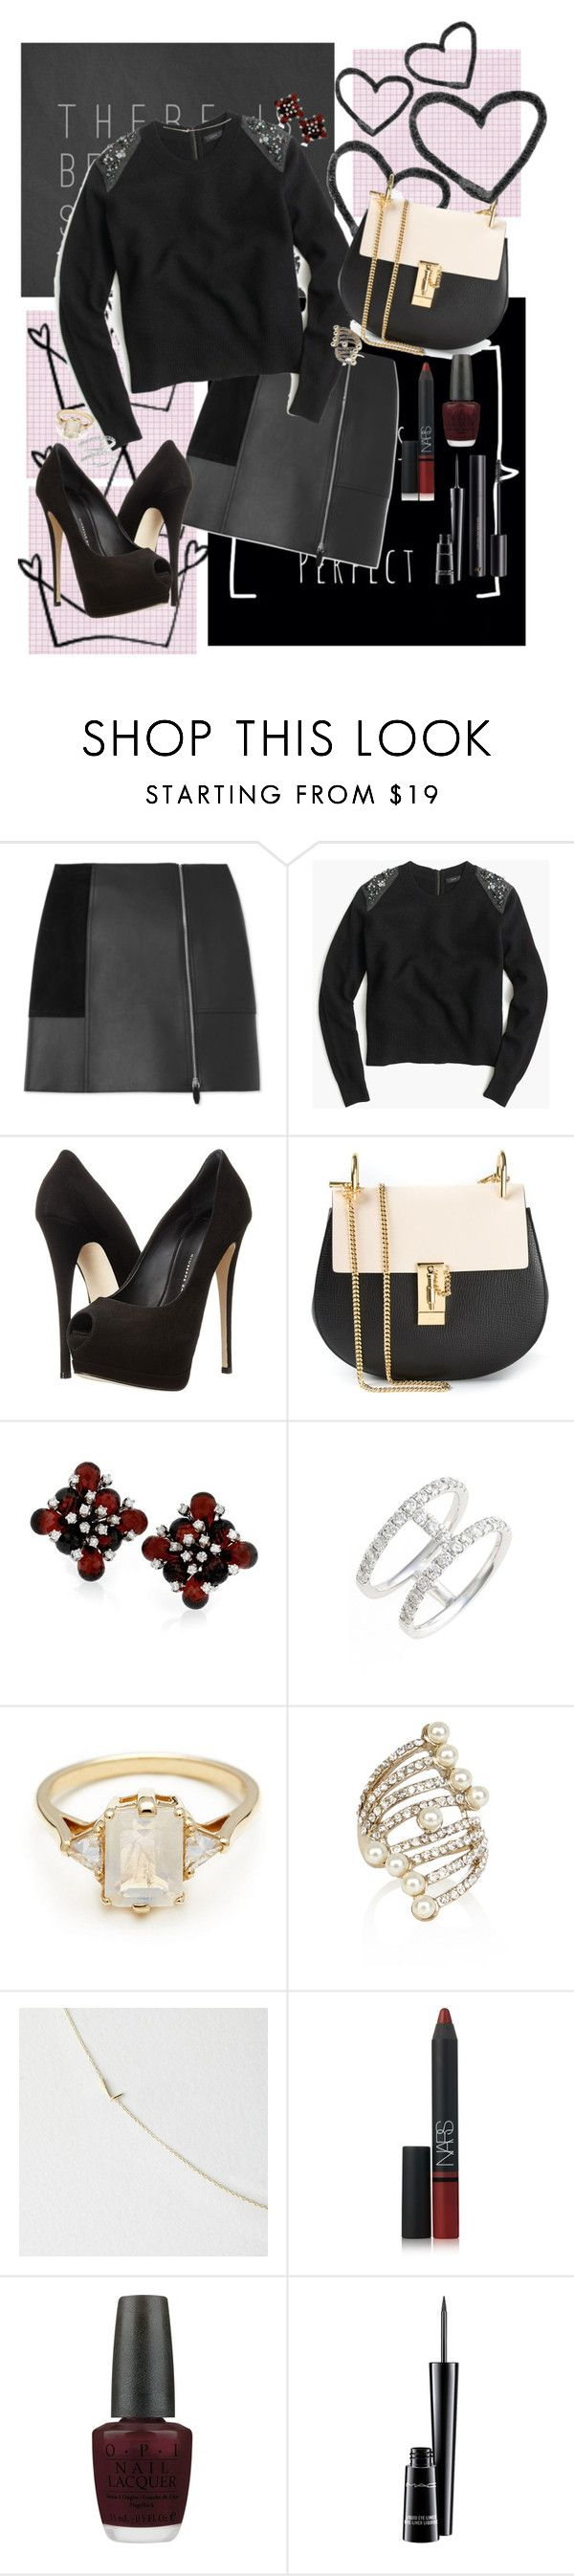 """Twisted"" by kittypom ❤ liked on Polyvore featuring Alexander Wang, J.Crew, Giuseppe Zanotti, Chloé, Bony Levy, BEA, Maya Brenner Designs, NARS Cosmetics, OPI and MAC Cosmetics"